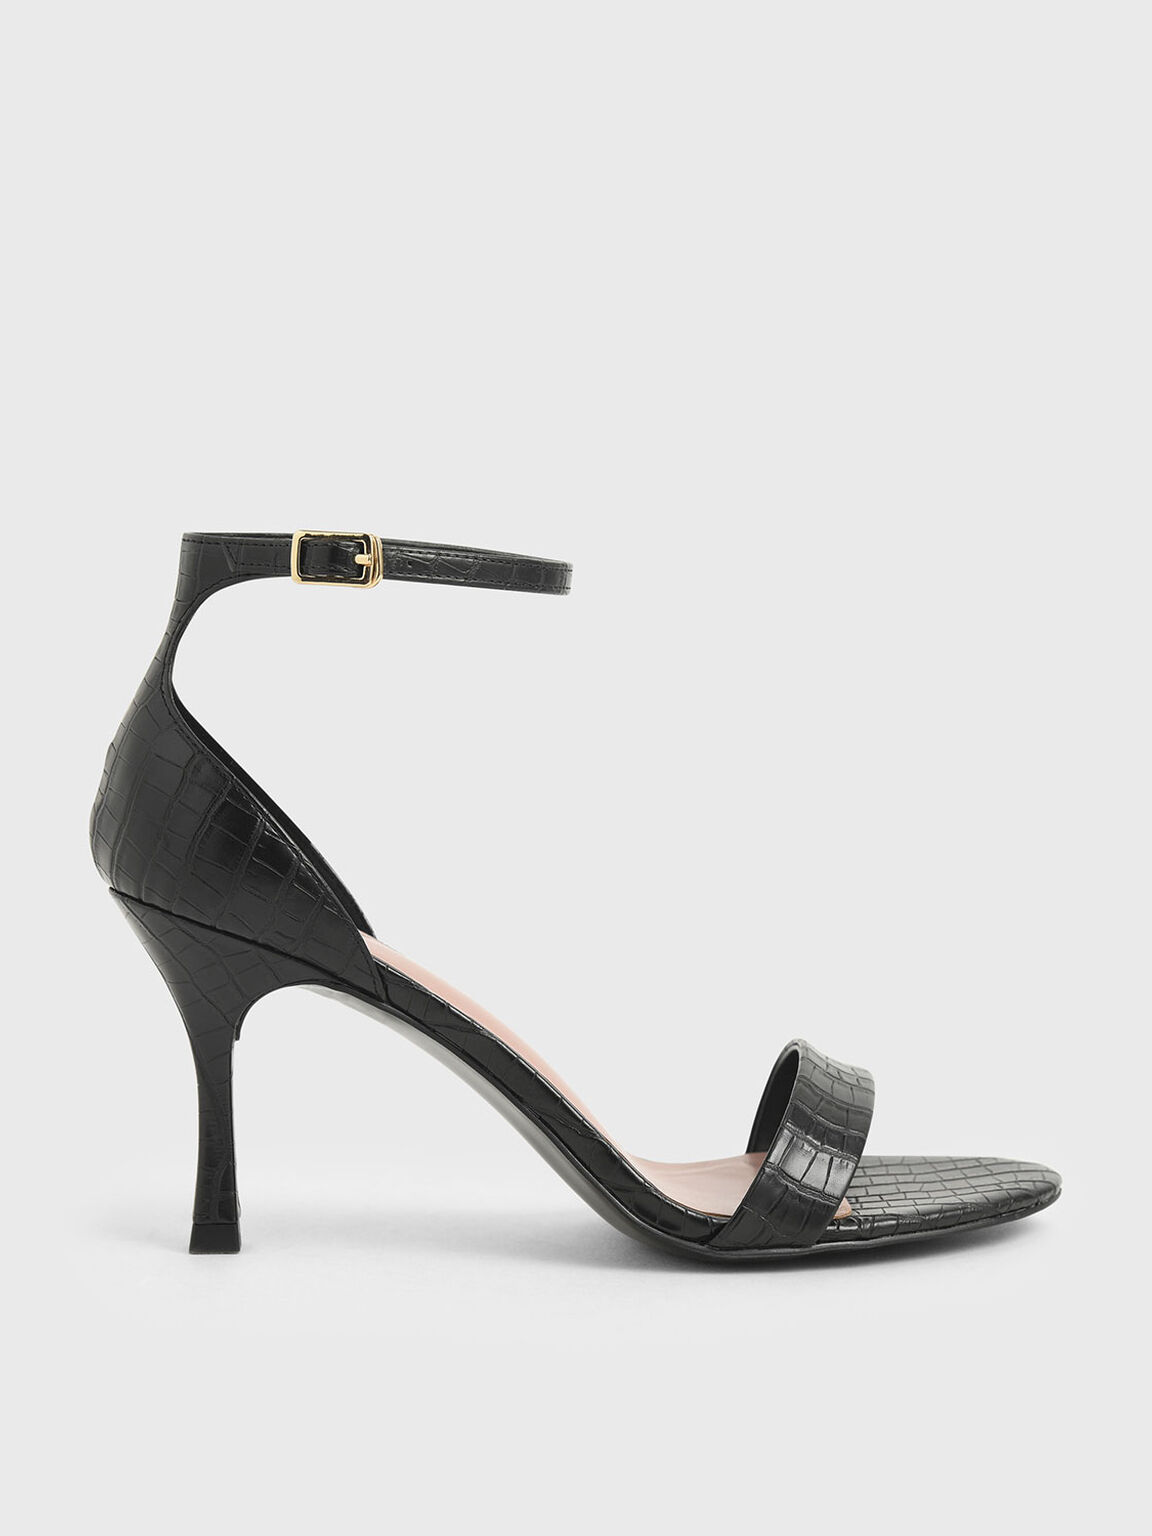 Croc-Effect Ankle Strap Heels, Black, hi-res